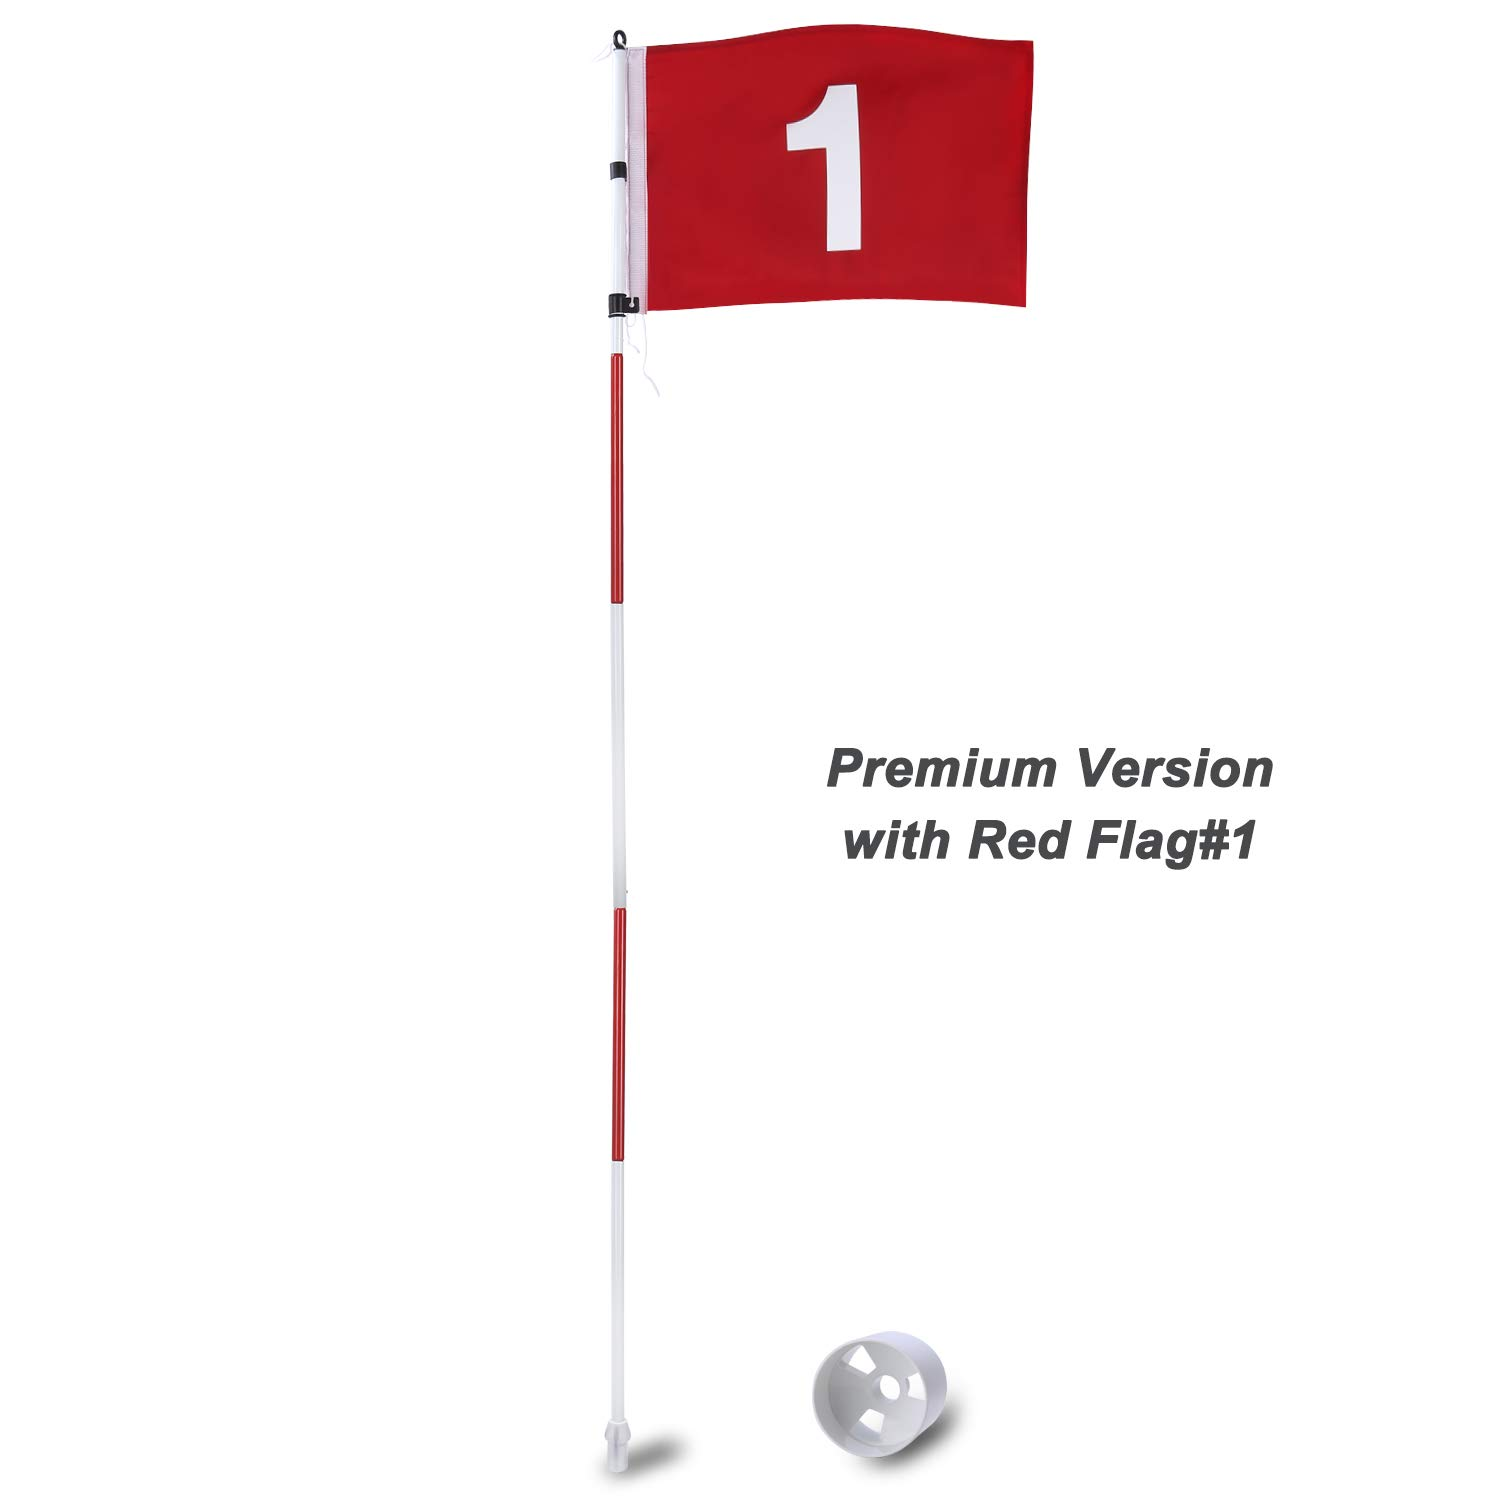 KINGTOP Upgraded Professional Portable Golf Pole Flags, Practice Putting Green Flagstick Hole Cup Set, Indoor/Outdoor, 5-Section Design, Solid Red Flag Numbered #1, 71-inch